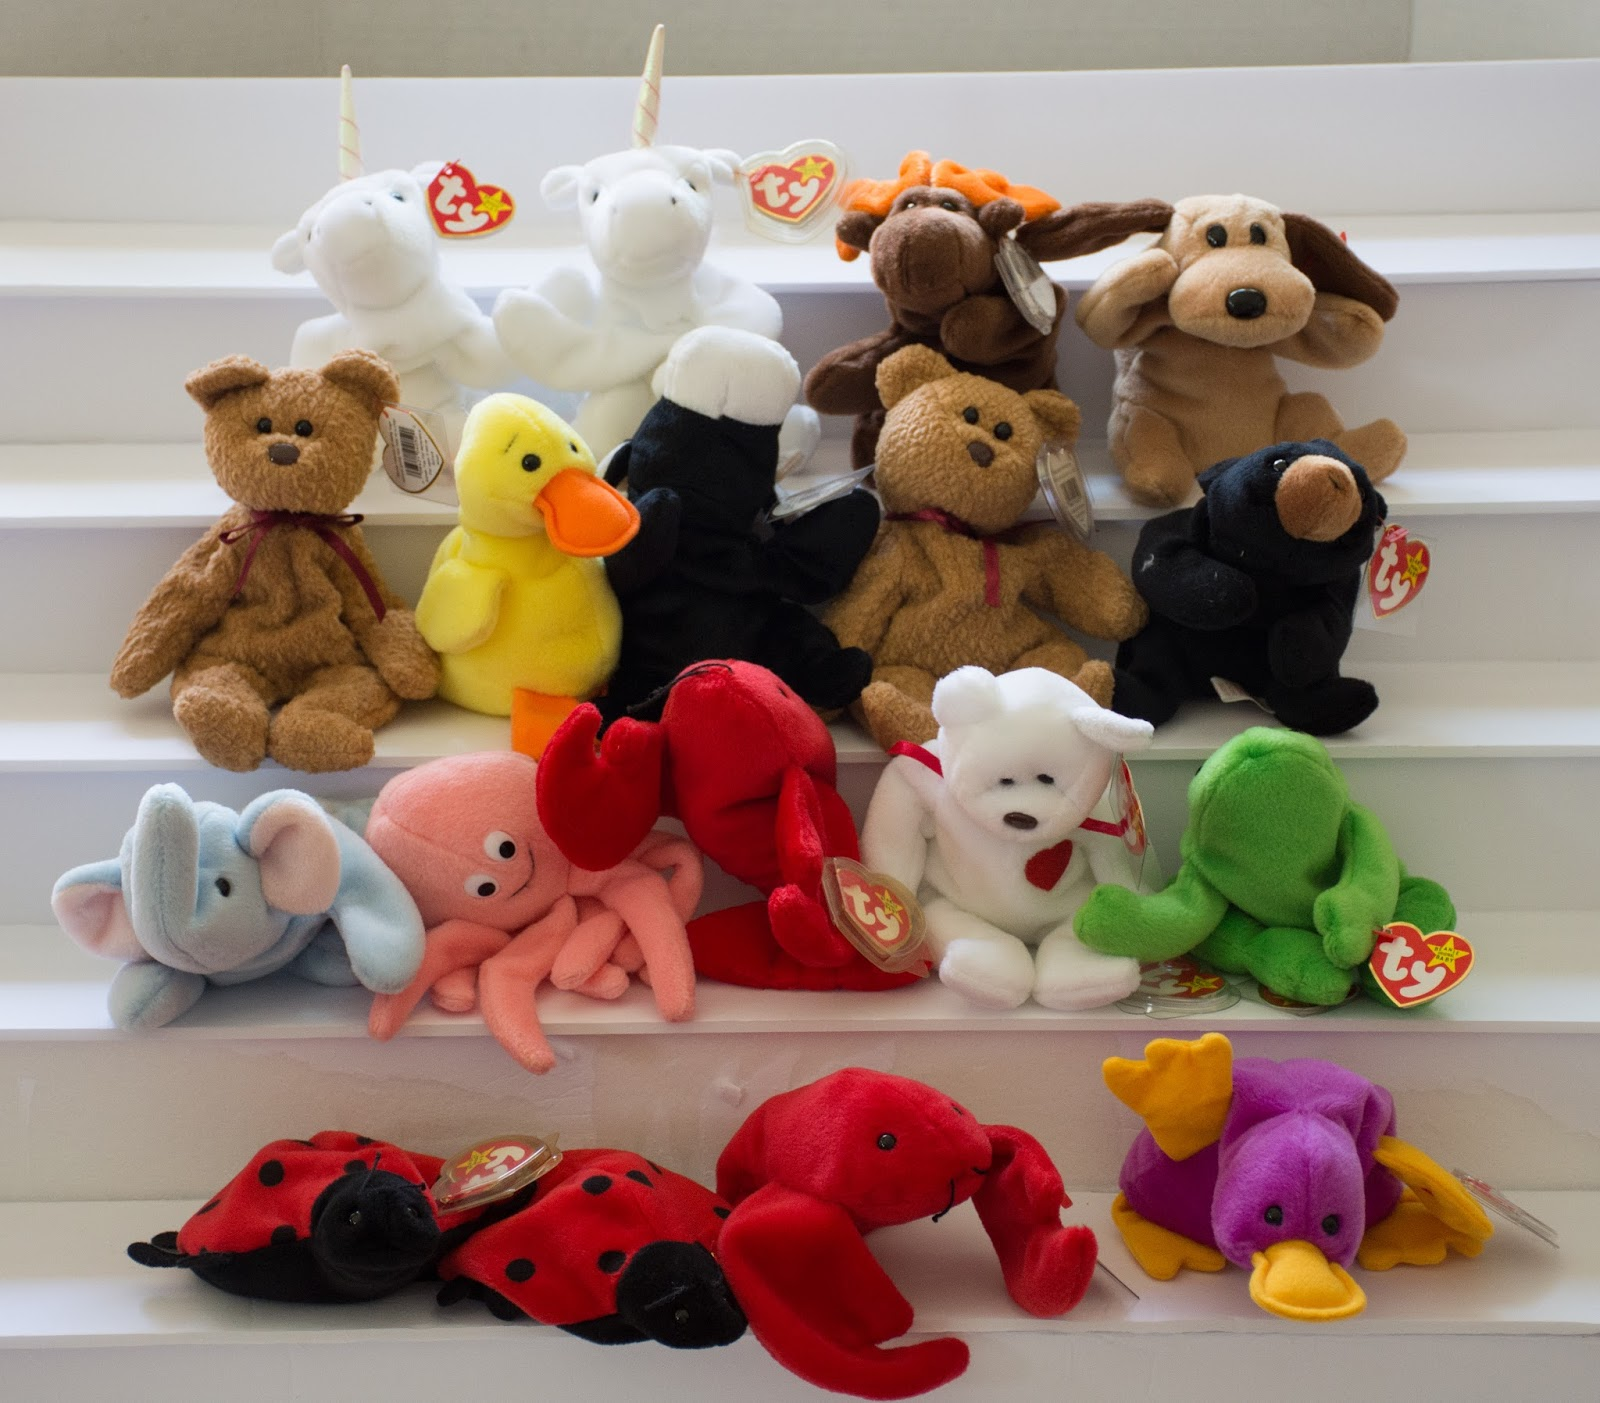 1993 invasion of the Beanie Babies 2d8038f4649